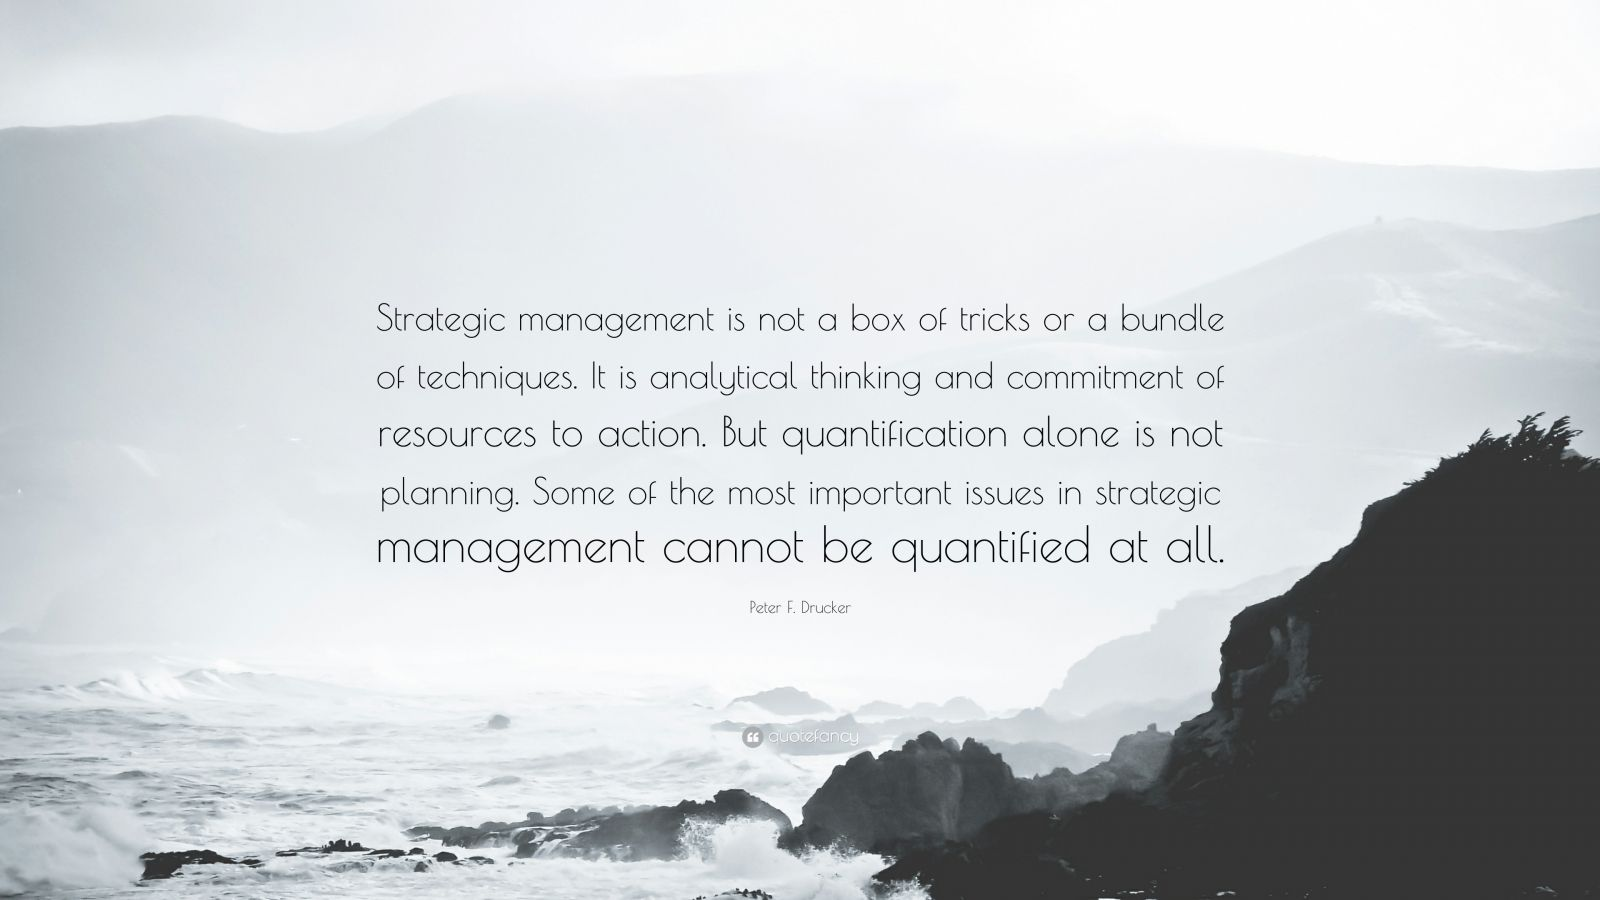 "Peter F. Drucker Quote: ""Strategic management is not a box of tricks or a bundle of techniques. It is analytical thinking and commitment of resources to action. But quantification alone is not planning. Some of the most important issues in strategic management cannot be quantified at all."""